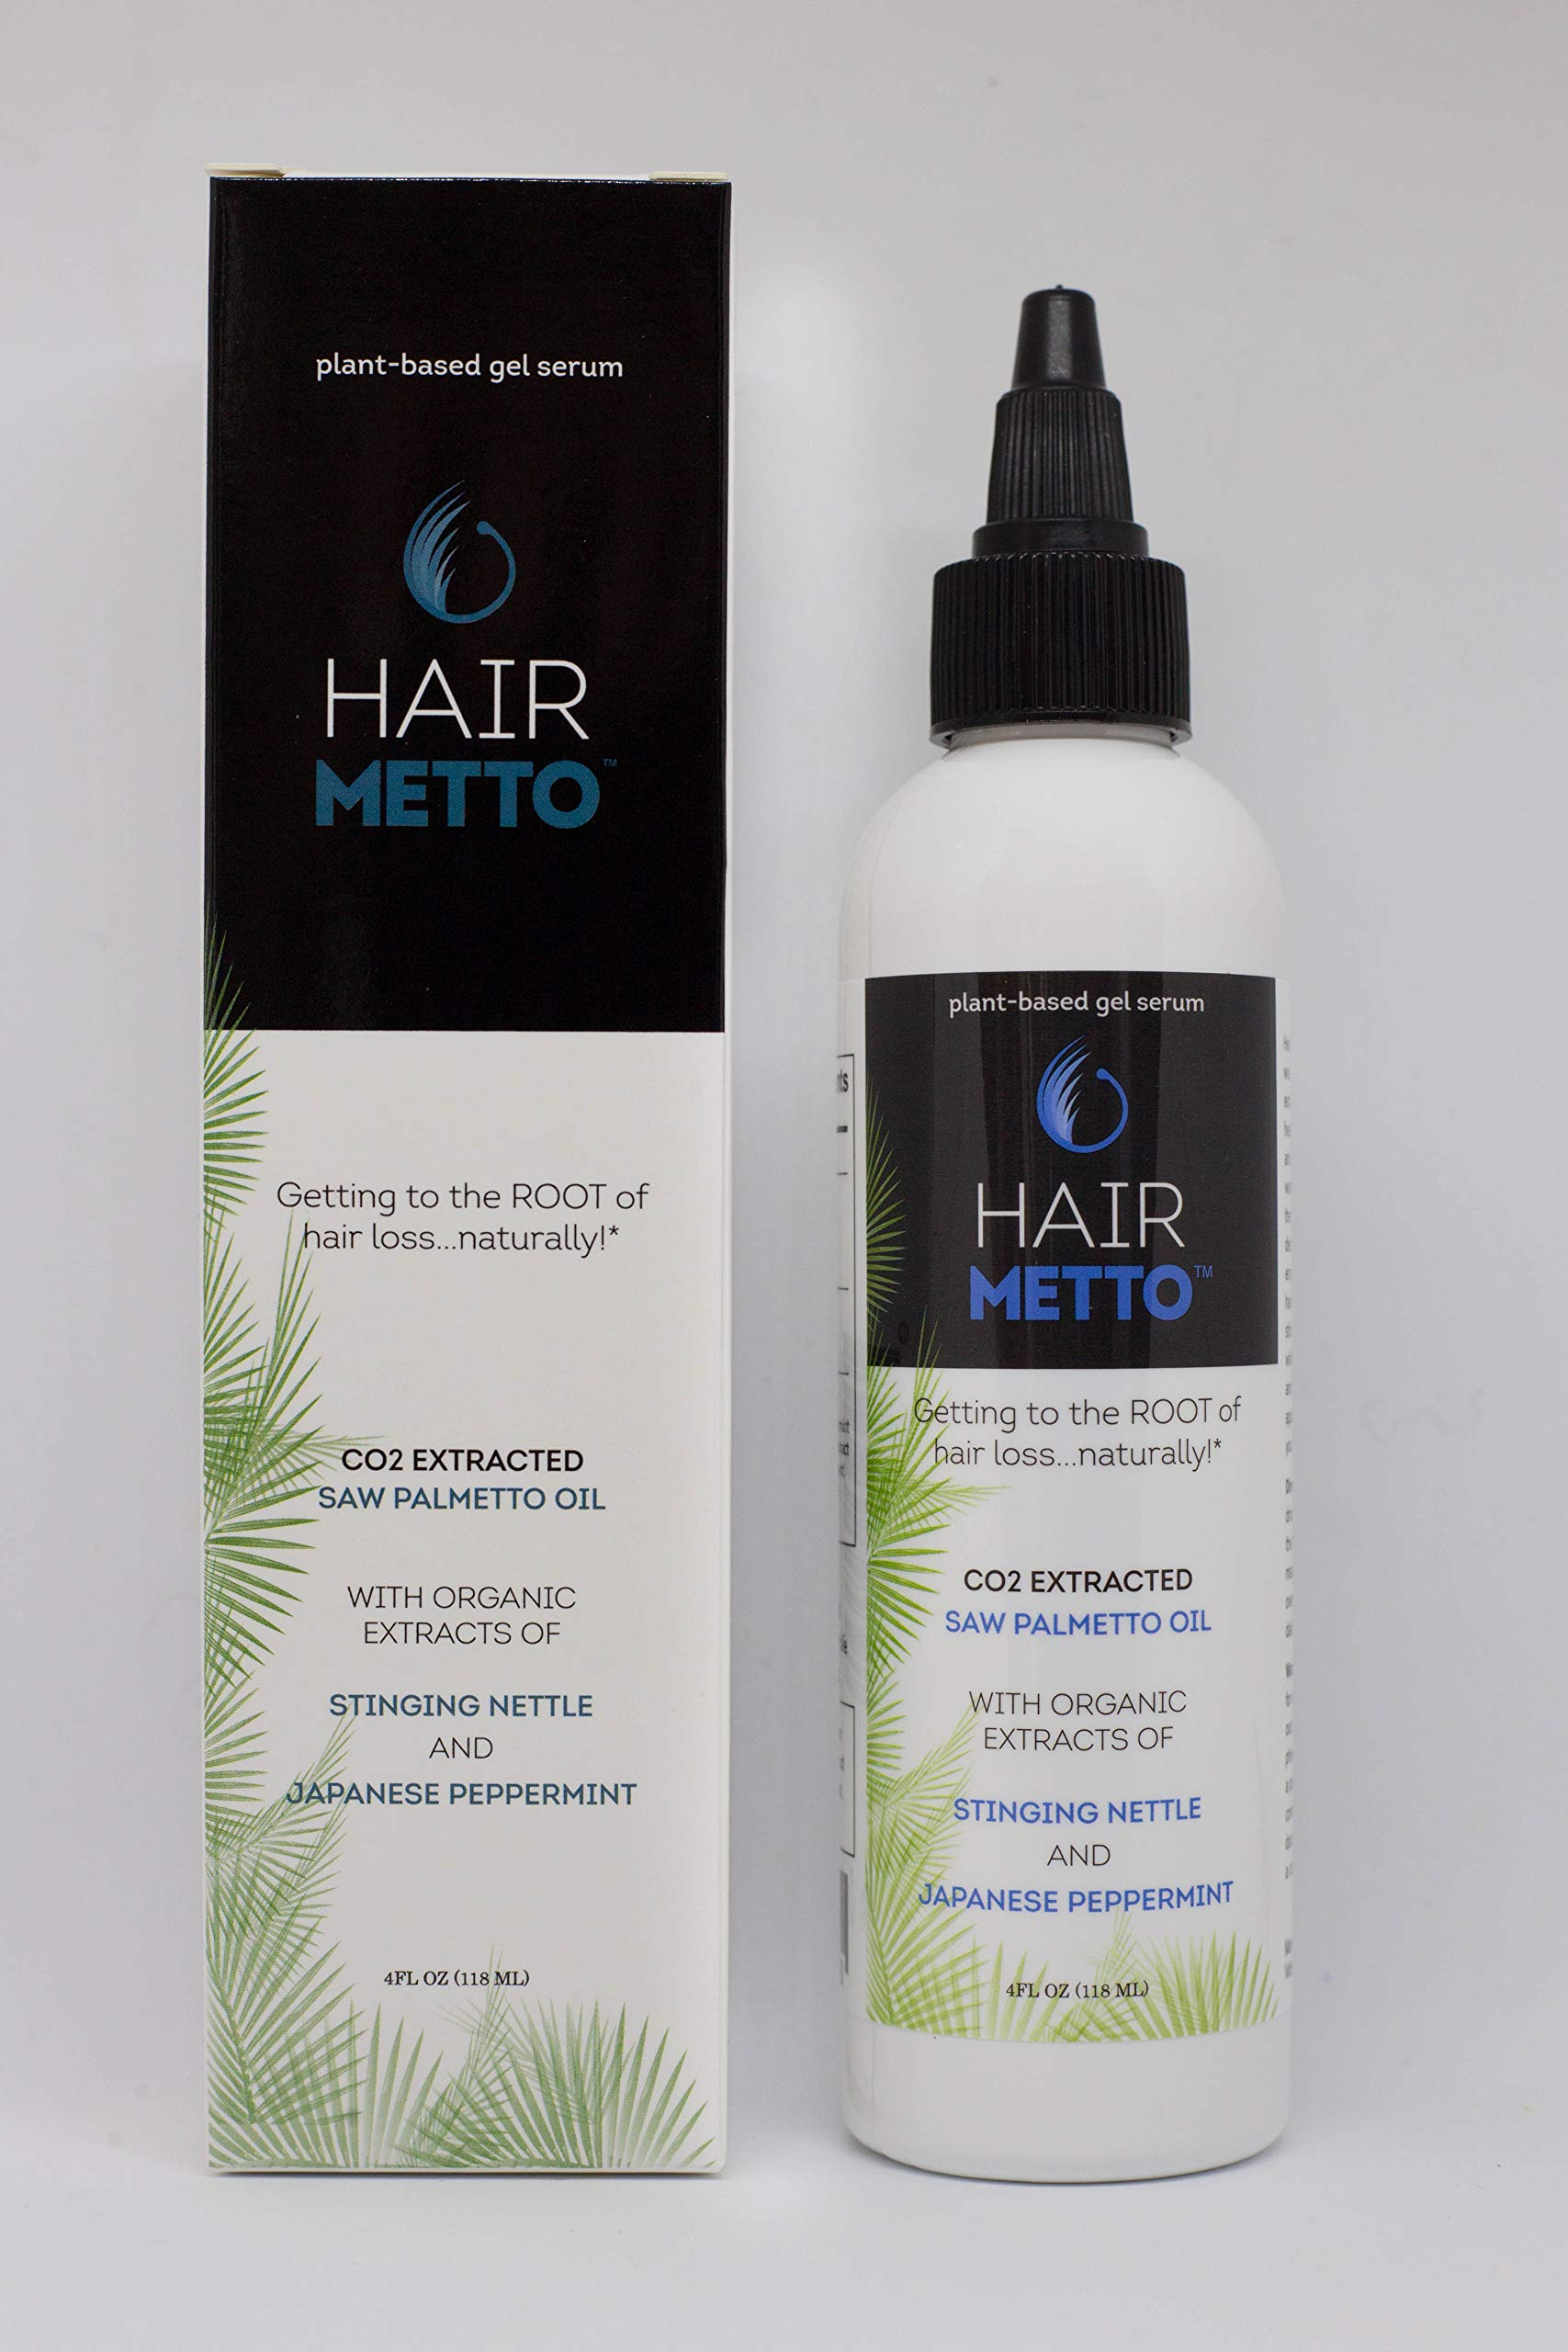 HAIRMETTO Saw Palmetto Stinging Nettle SERUM for Hair Growth, Hair Regrowth, Alopecia, Hair Loss, Baldness Treatment, DHT Blocker, Androgen Blocker, Hair Follicle Stimulator Oil for Hair Regeneration